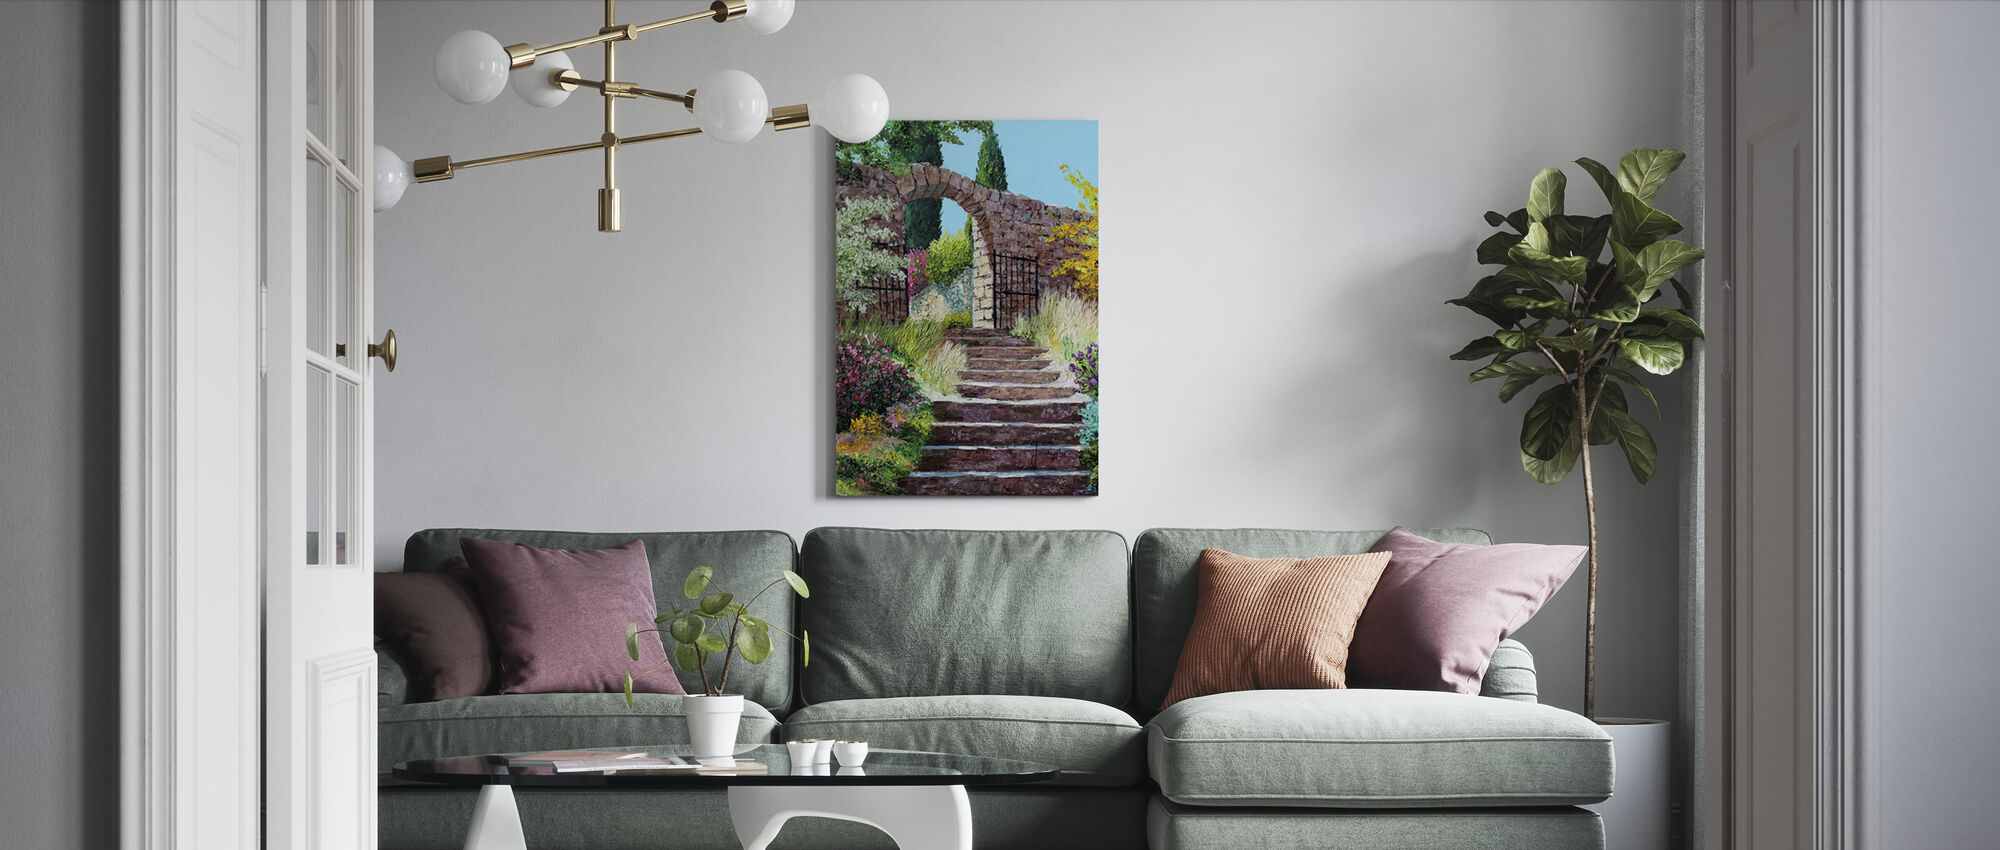 Stairway Fleading to the Garden - Canvas print - Living Room